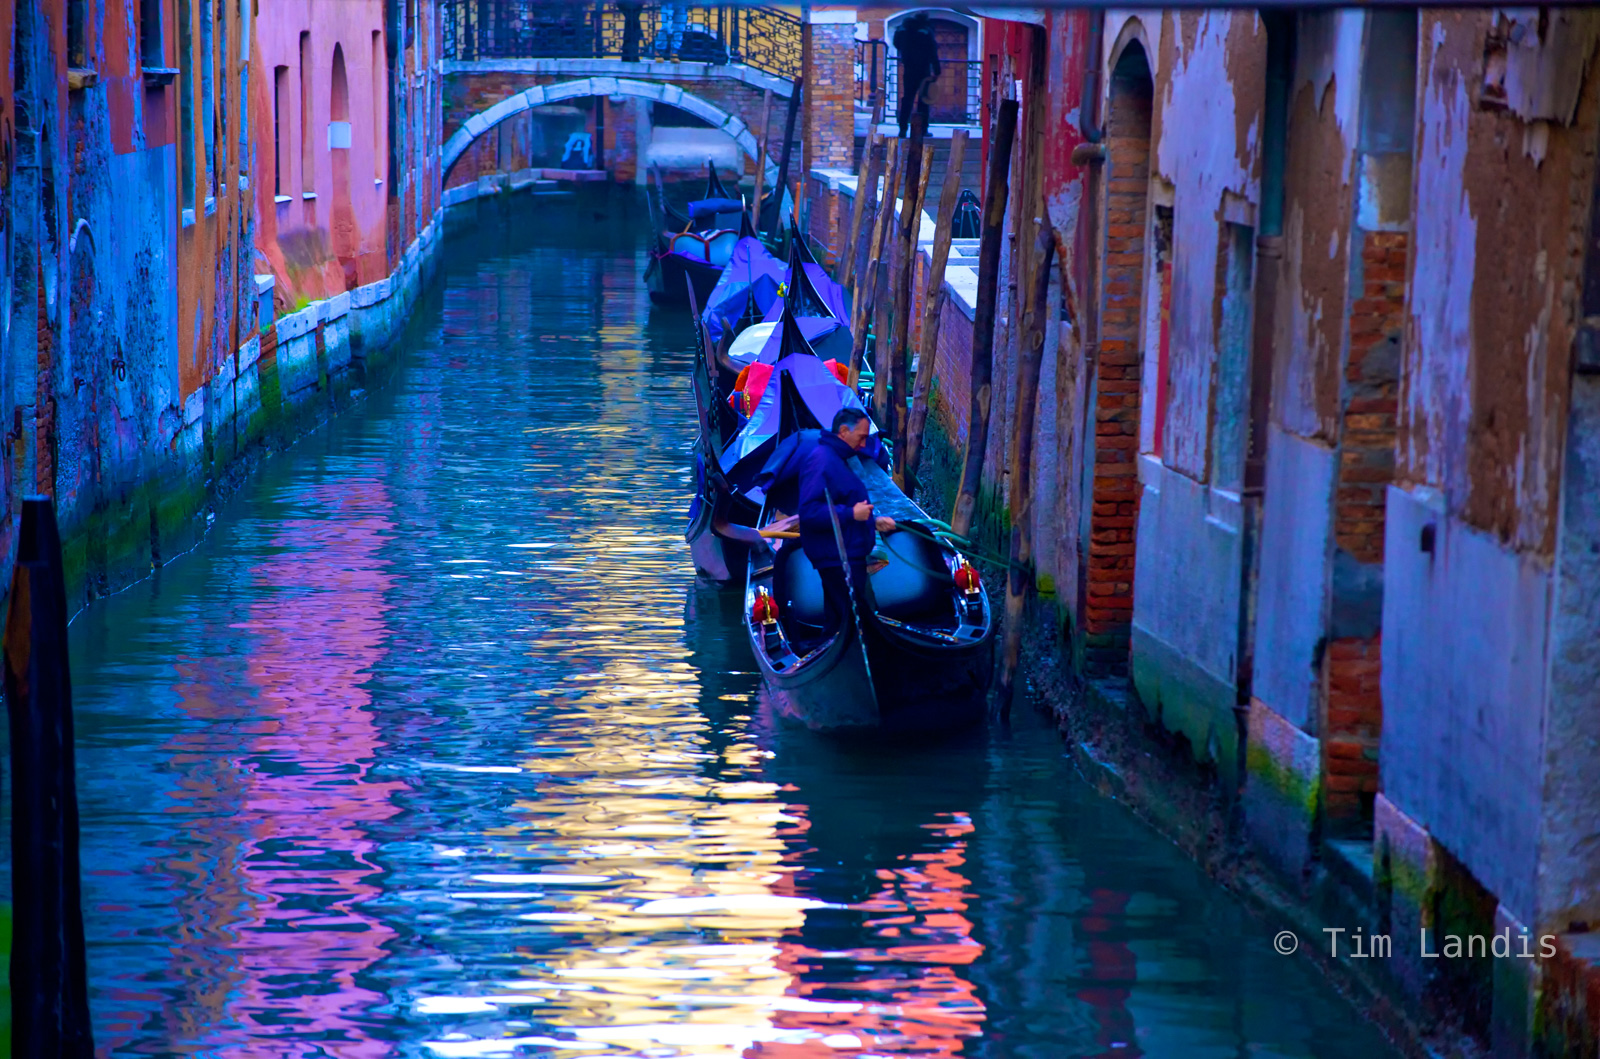 canal in venice, gondolas, parking lot in venice, reflections, photo